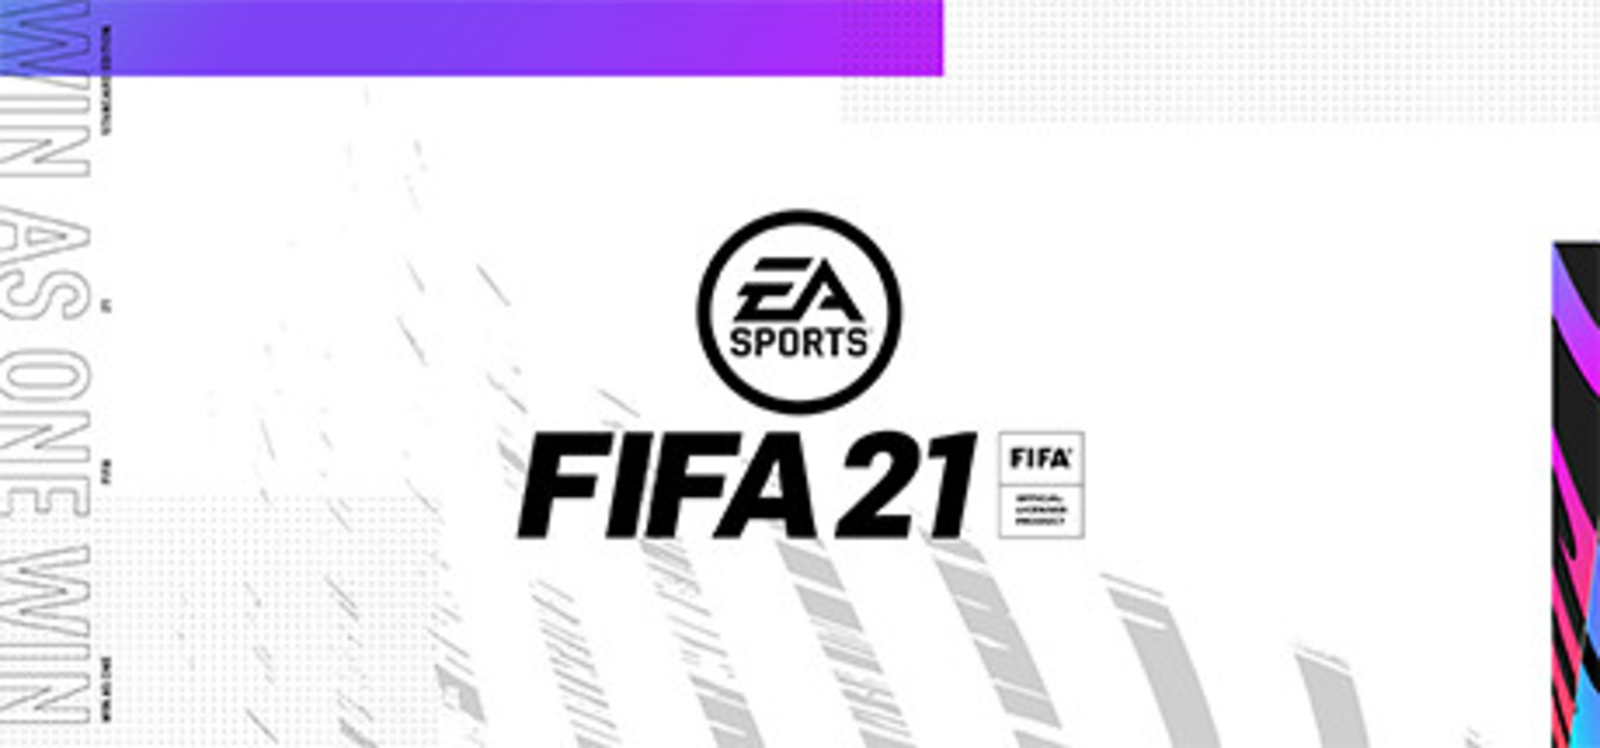 Fifa 21 Pre Order Information And Release Date Announced Sports Gamers Online Fifa Athlete Version